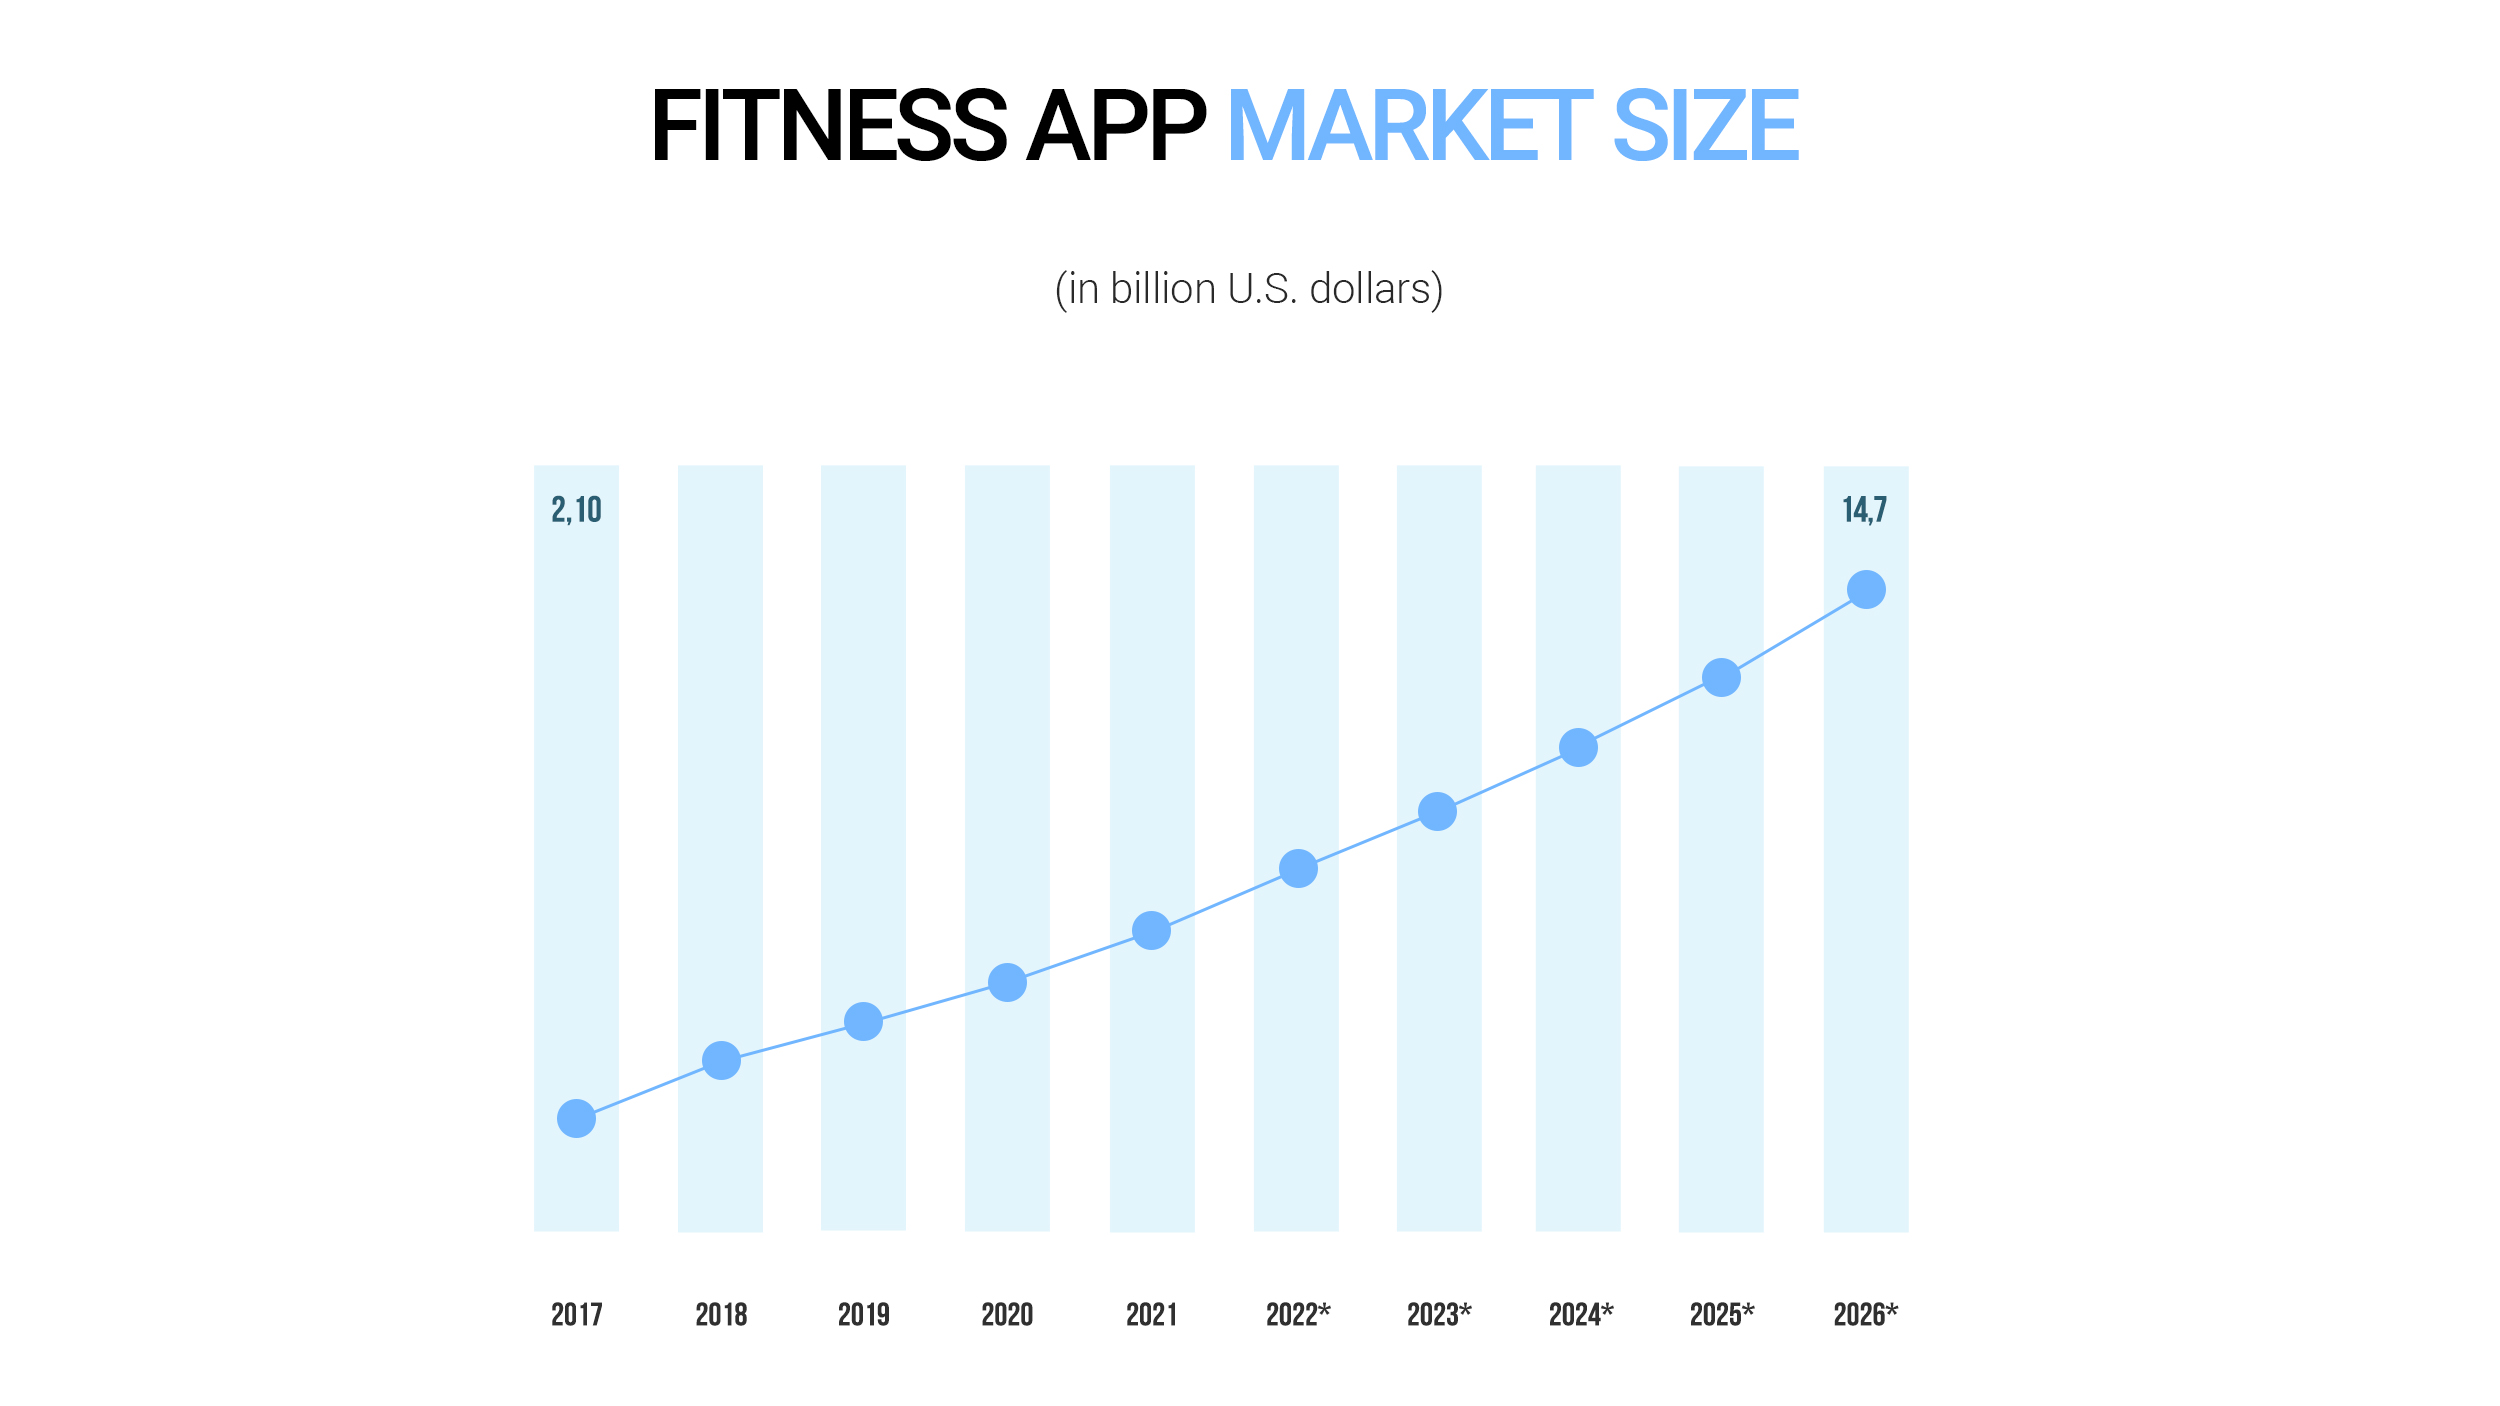 Fitness app market size growth